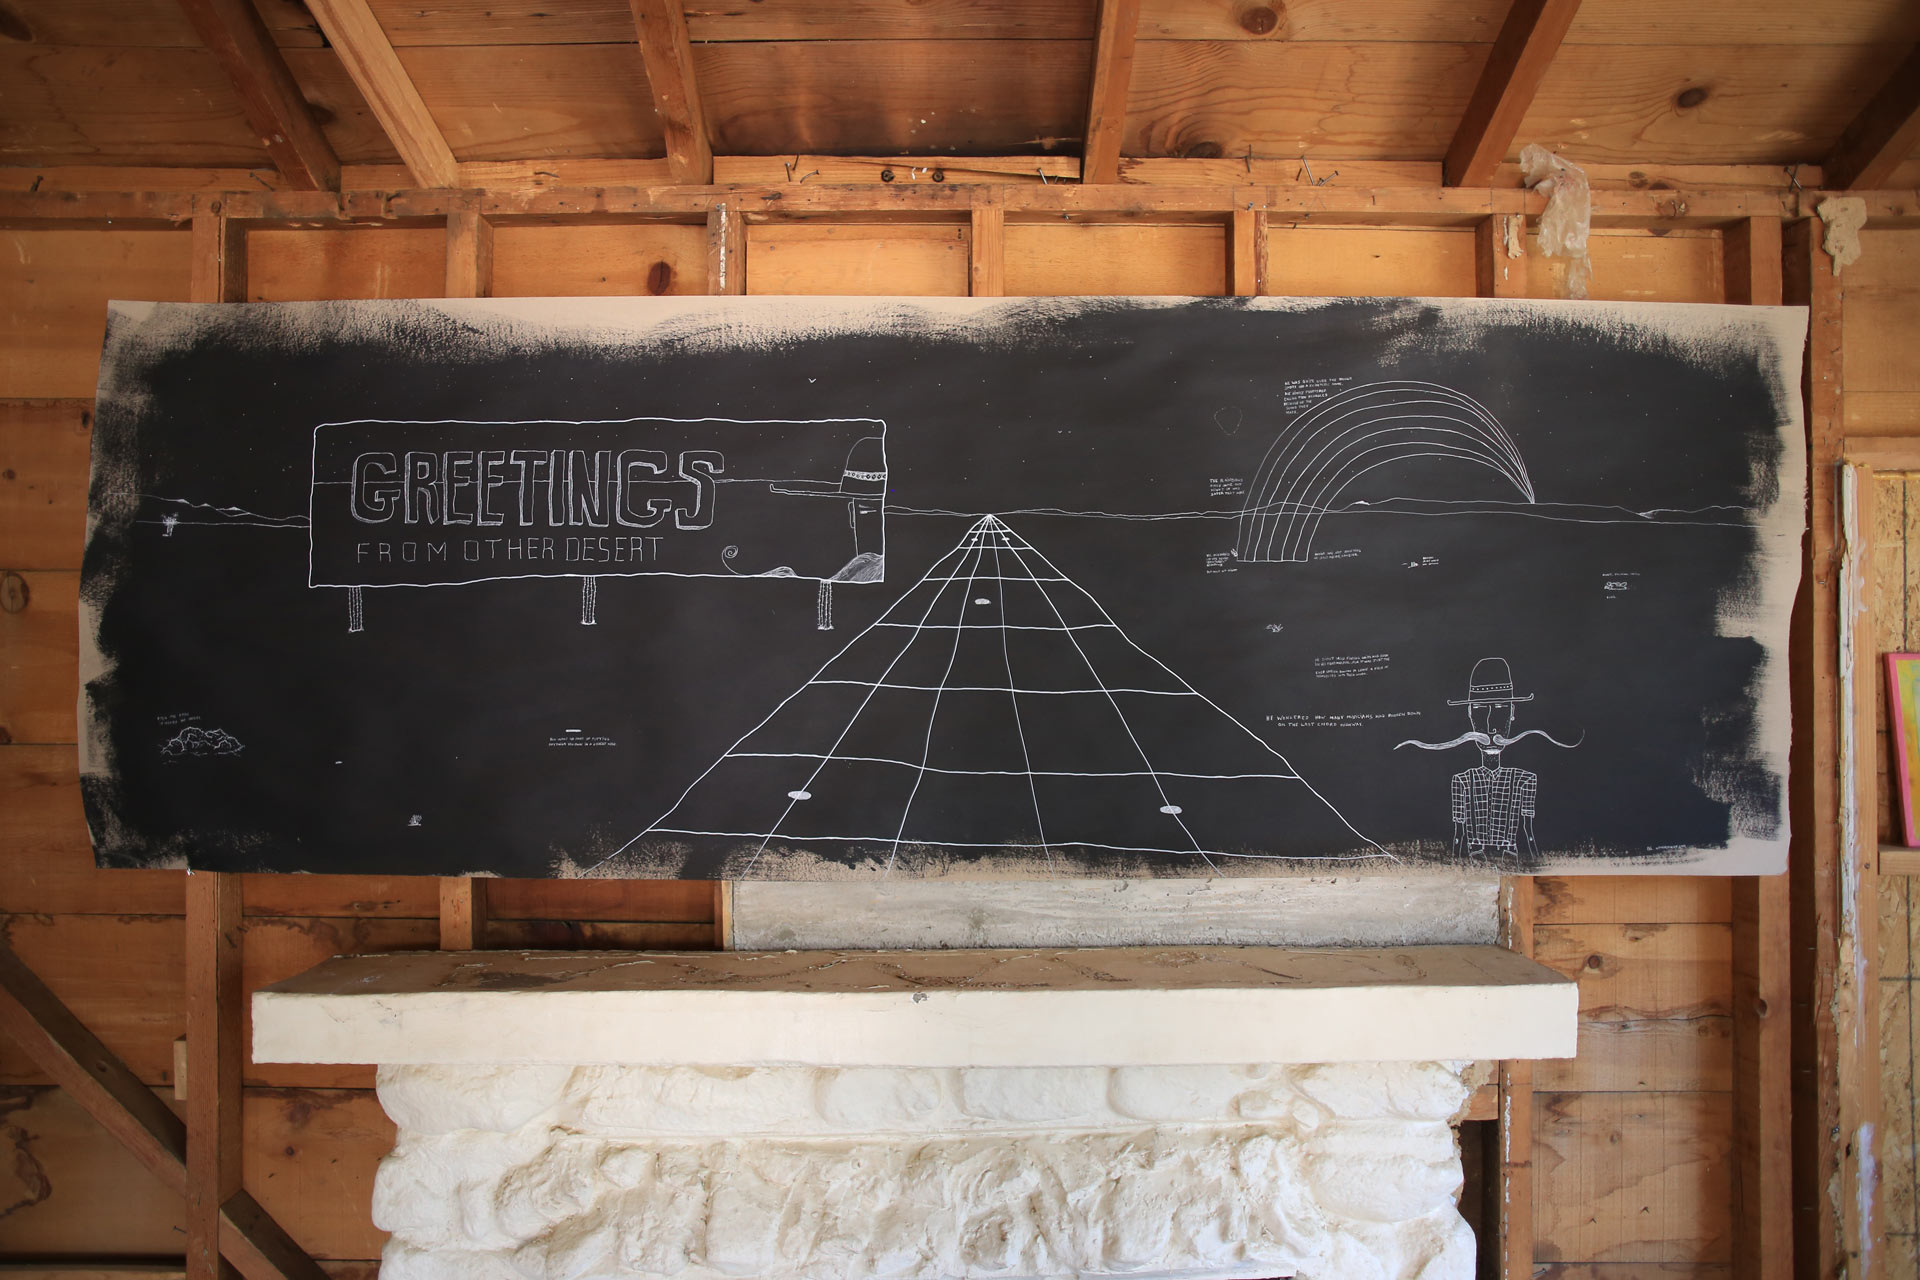 'Greetings From Other Desert' 8' x 3' mixed-media mural on kraft paperboard.